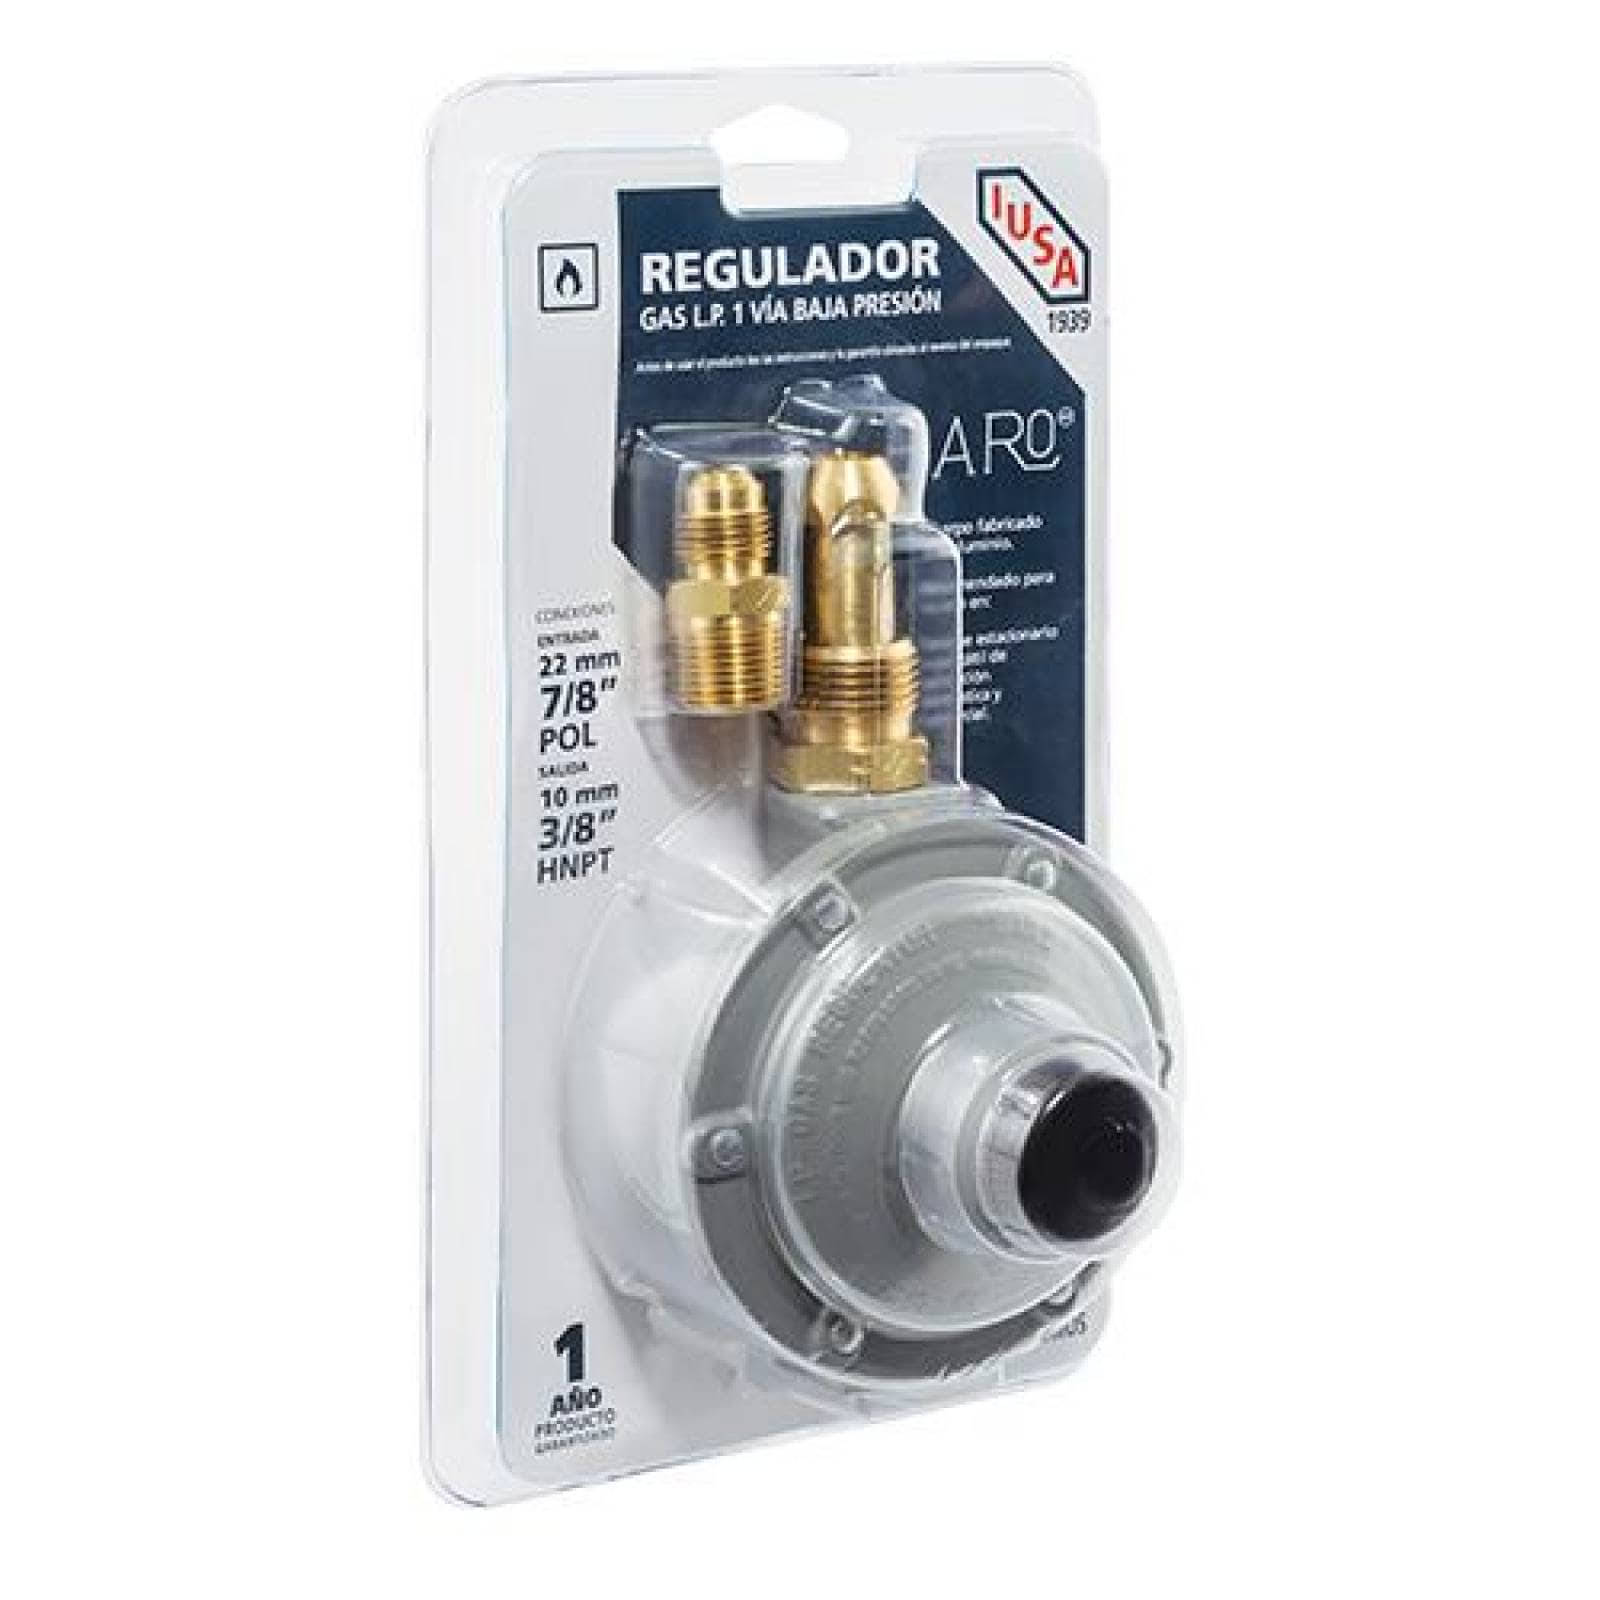 Regulador Baro para gas LP mod 102 Caja 10 pzas